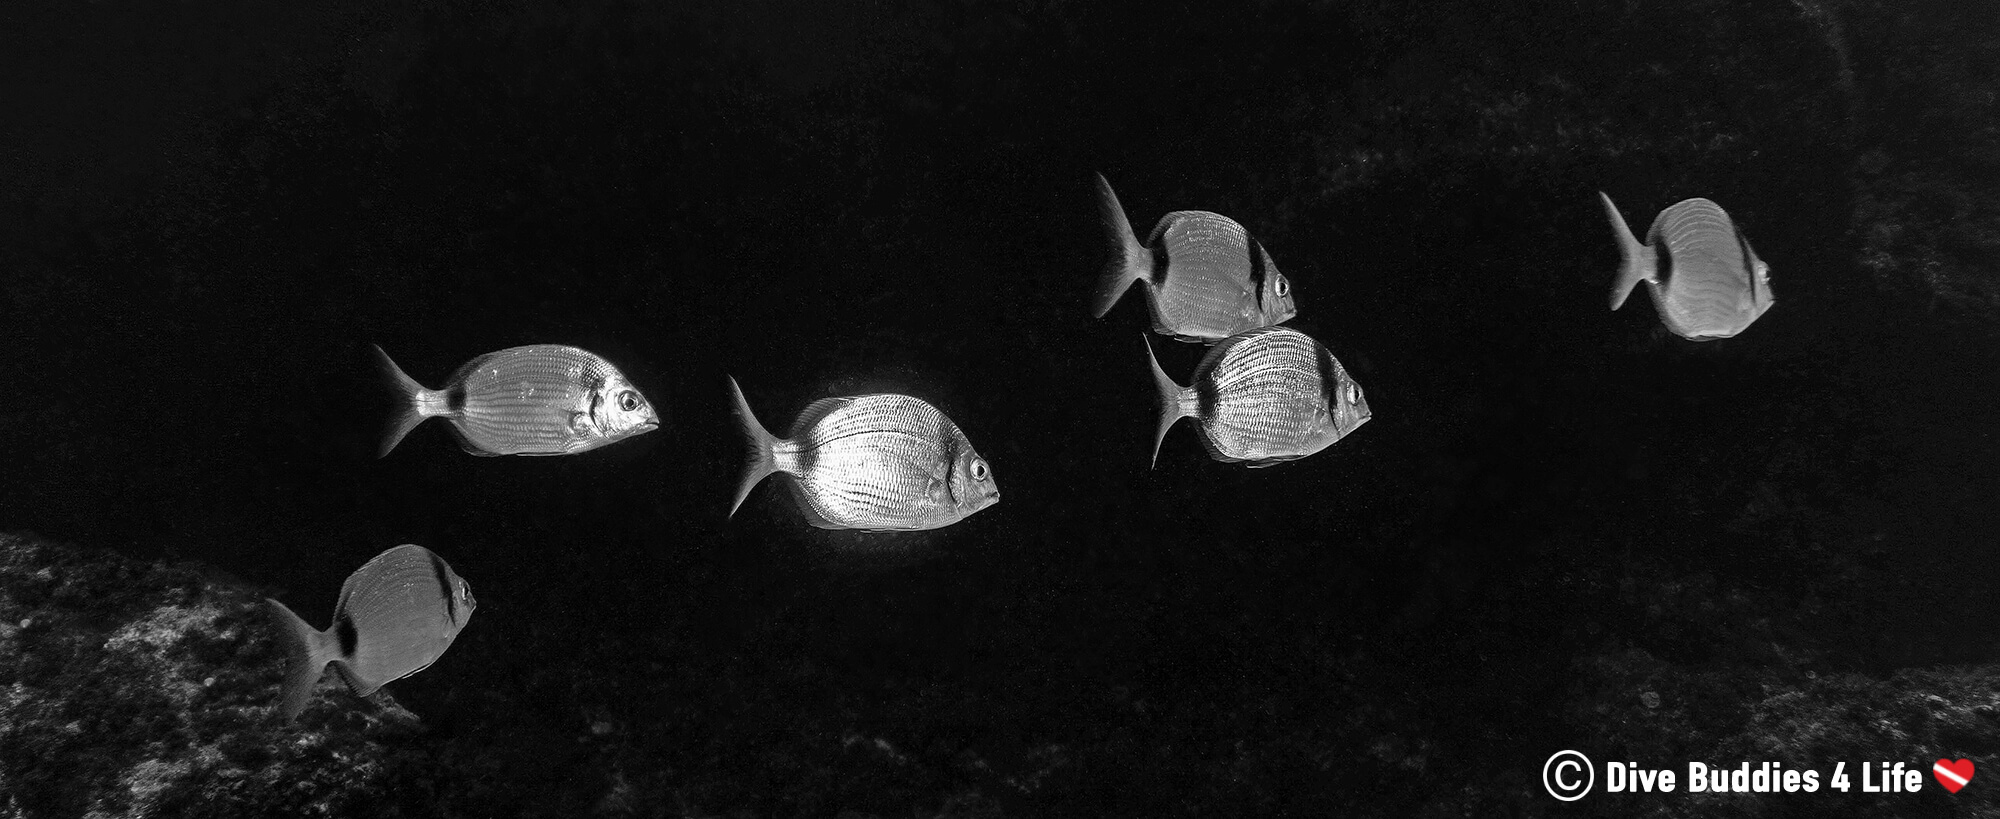 A Group Of Shiny Silver Fish Swimming Underwater On A Night Dive In Lanzarote, Spain